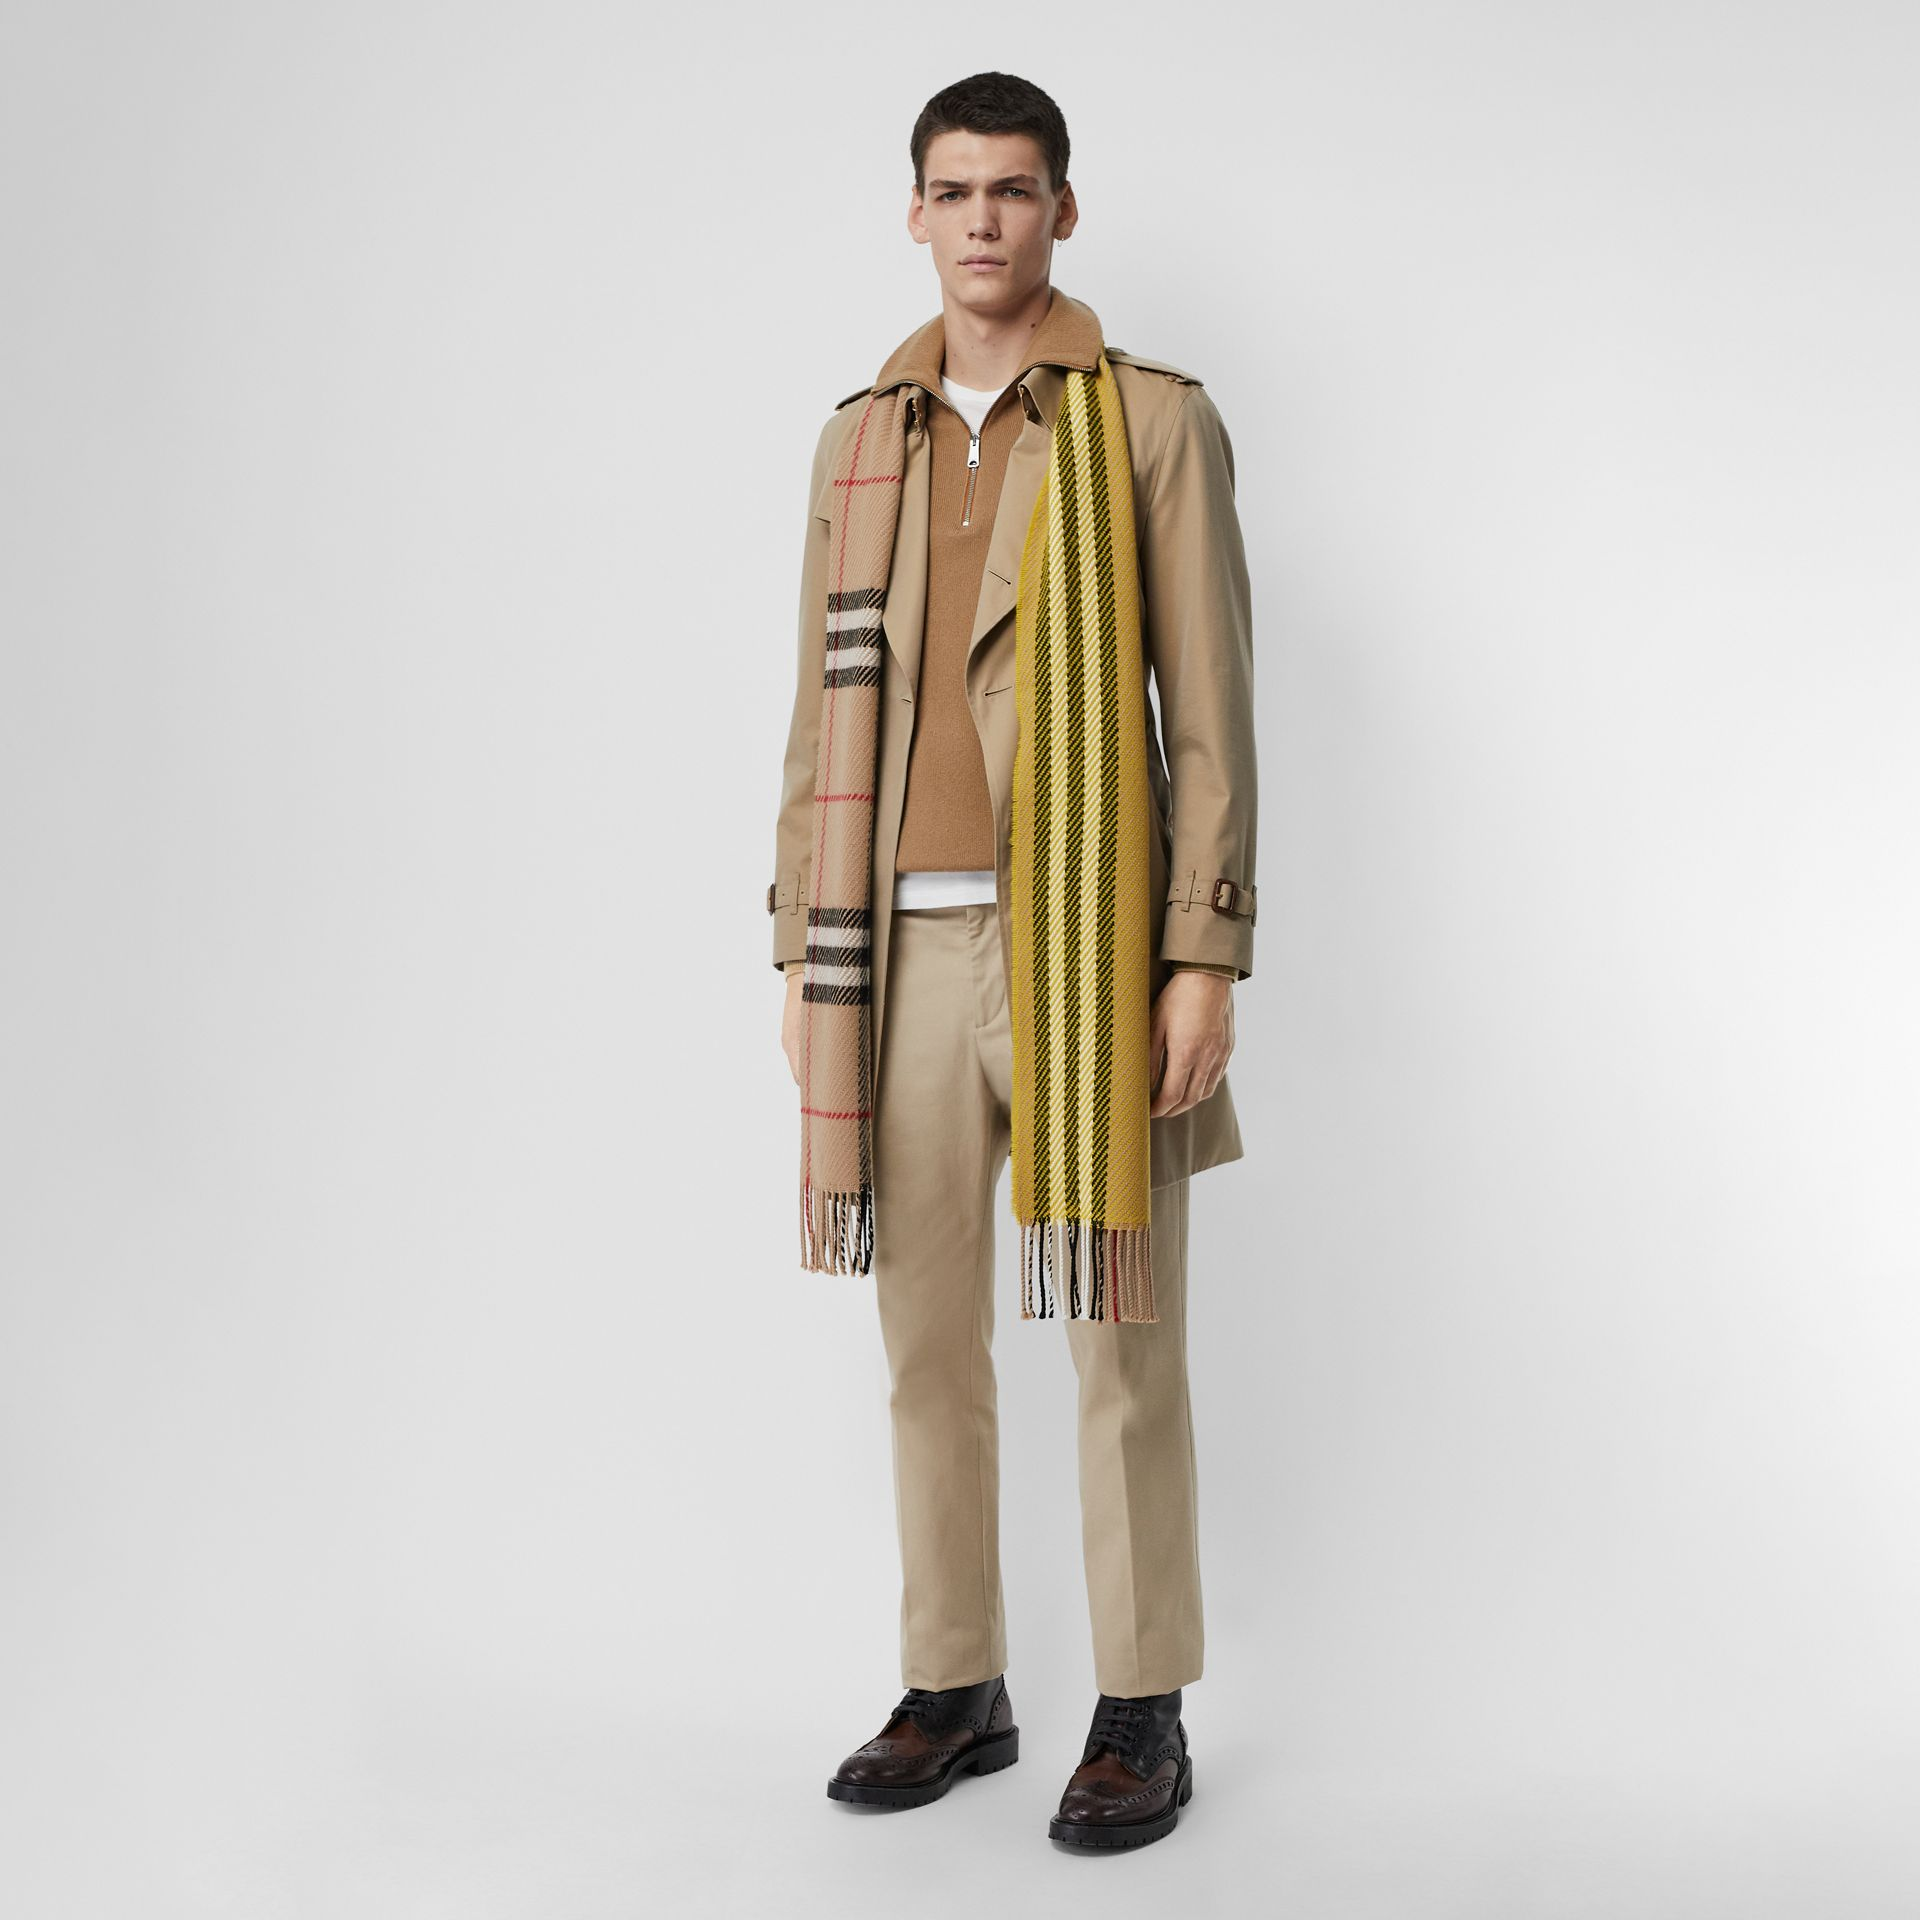 Rib Knit Cashmere Half-zip Sweater in Camel - Men | Burberry United Kingdom - gallery image 4